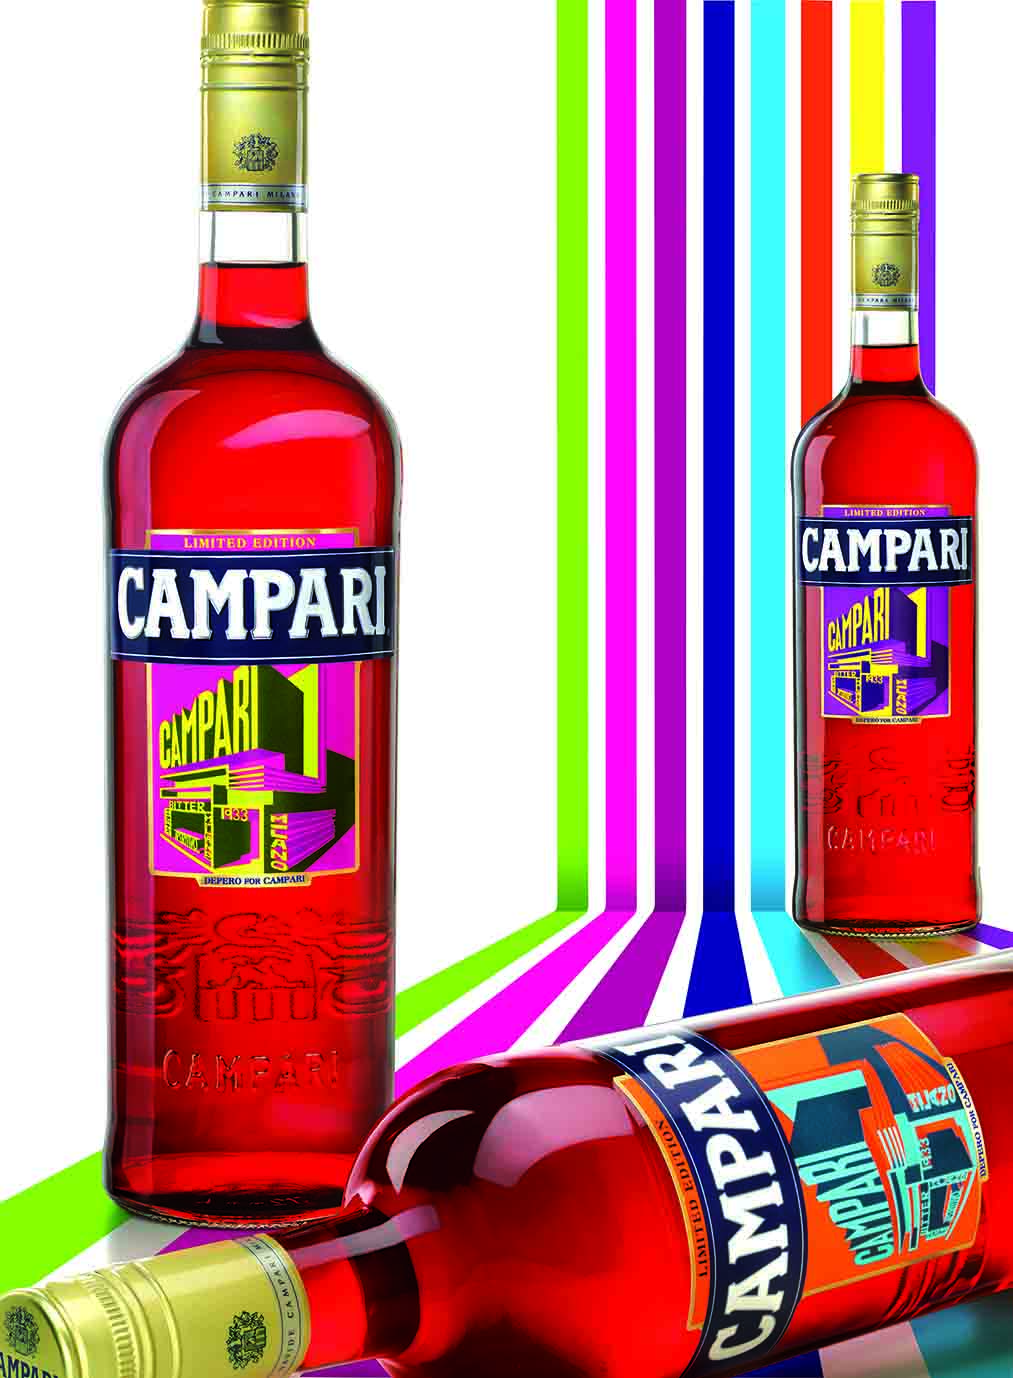 Campari_Bottle_ArtLabel_2015_KEYVISUAL_2_CMYK_LR